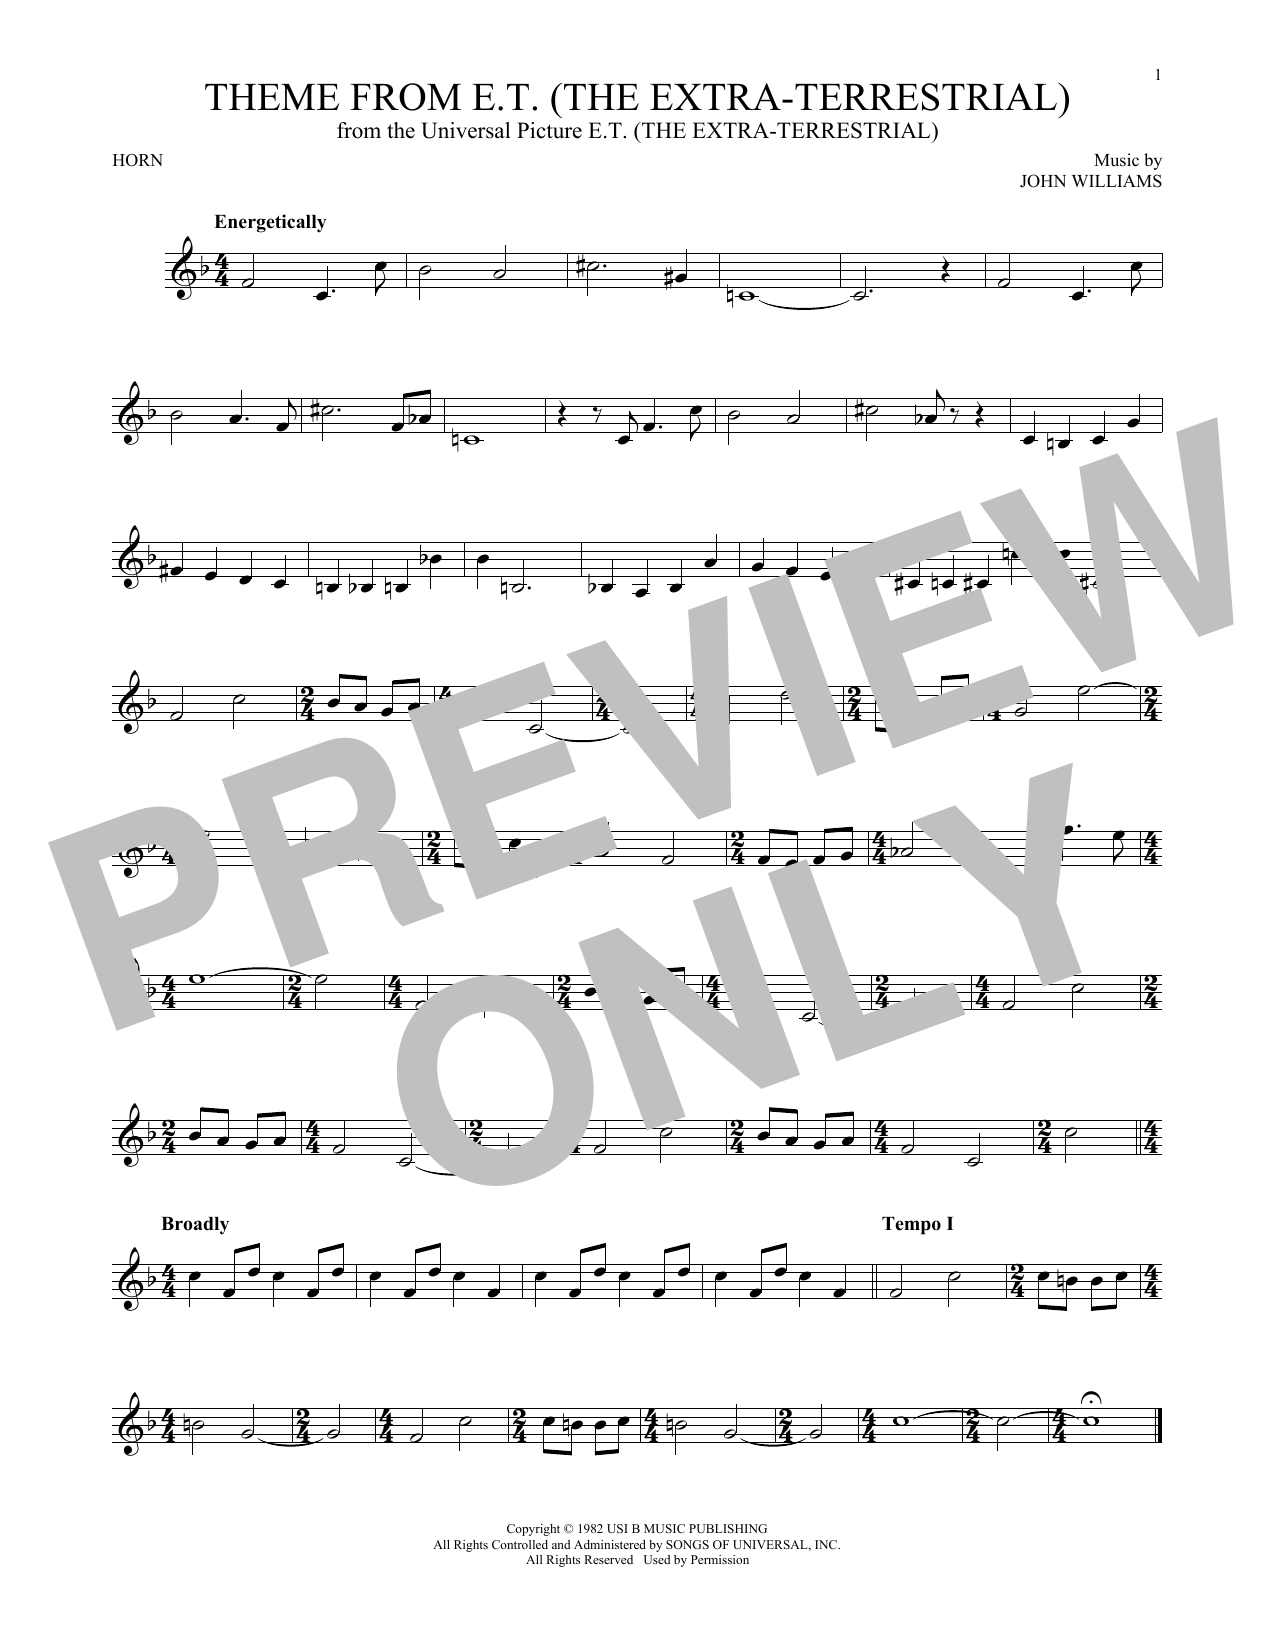 Theme From E.T. (The Extra-Terrestrial) (French Horn Solo)